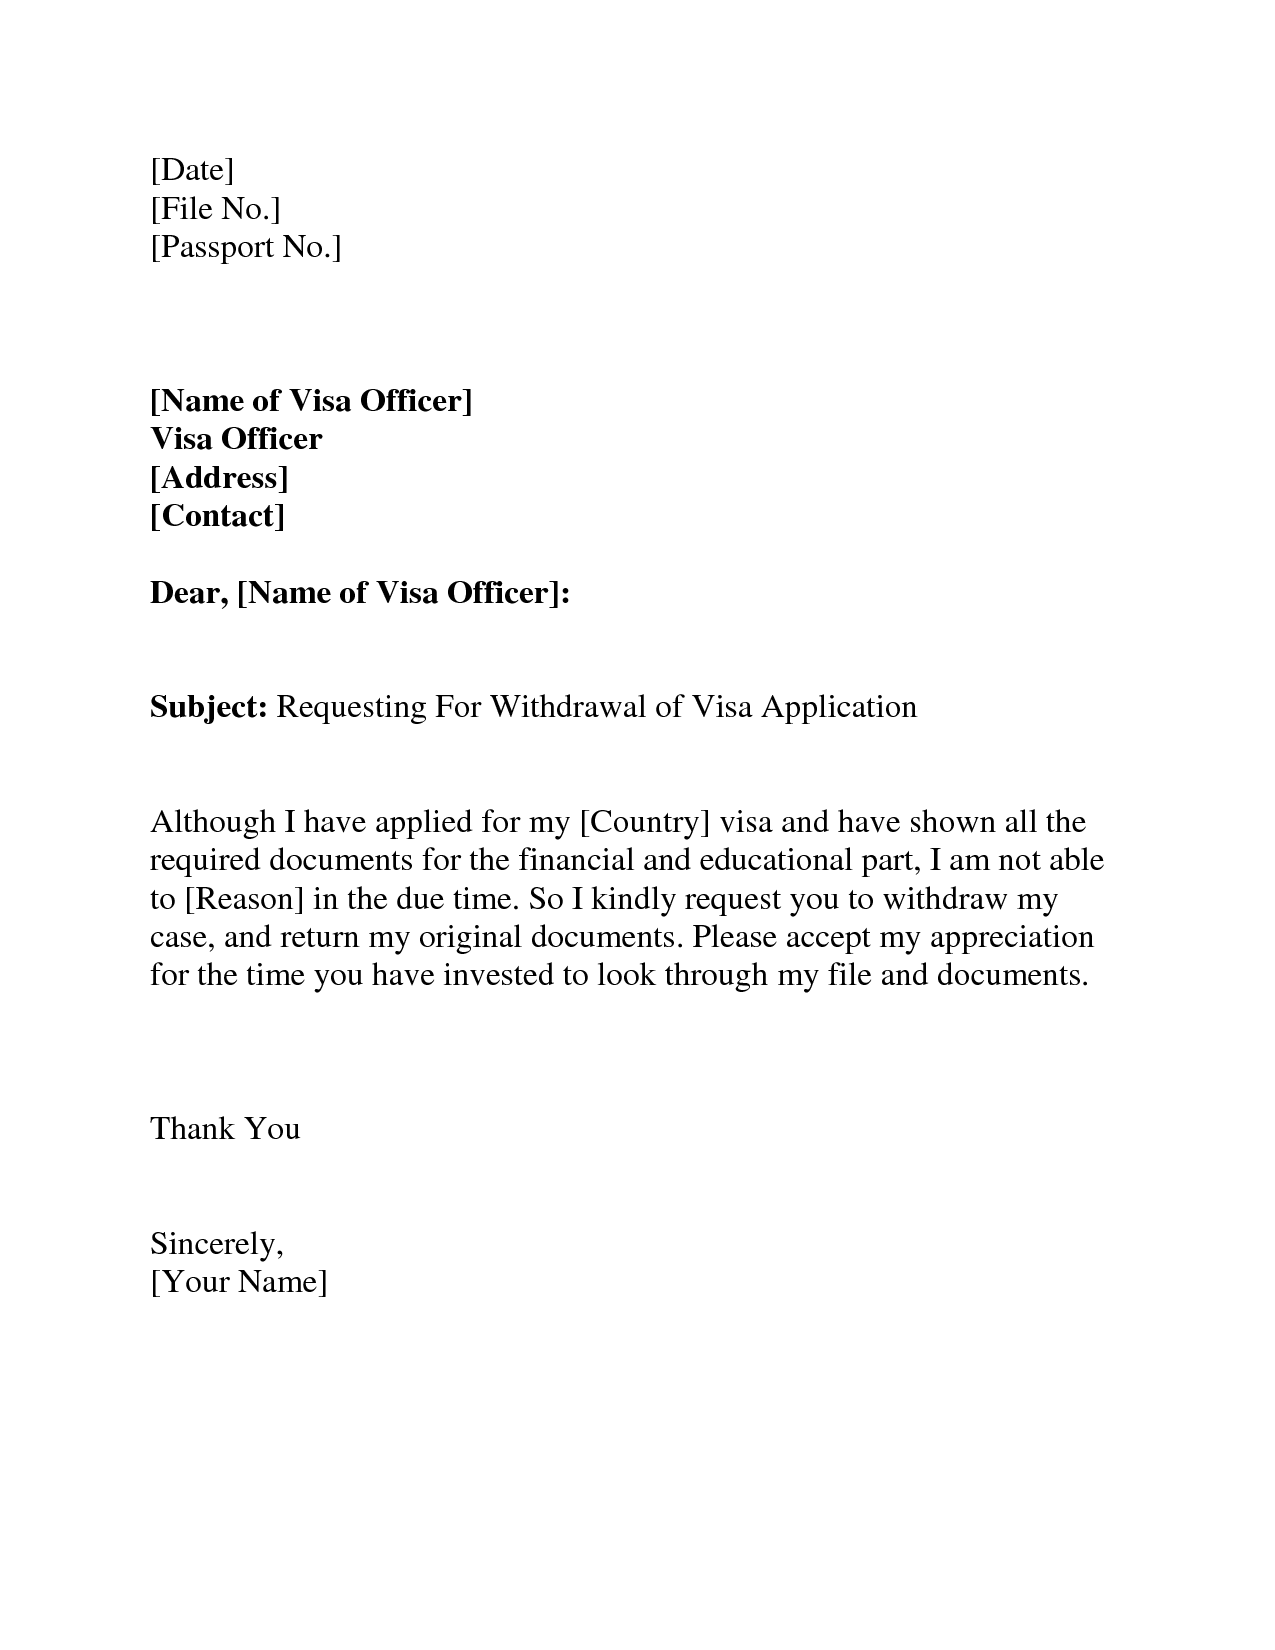 Visa withdrawal letter request letter format letter and emailvisa visa withdrawal letter request letter format letter and emailvisa invitation letter to a friend example application letter sample altavistaventures Choice Image